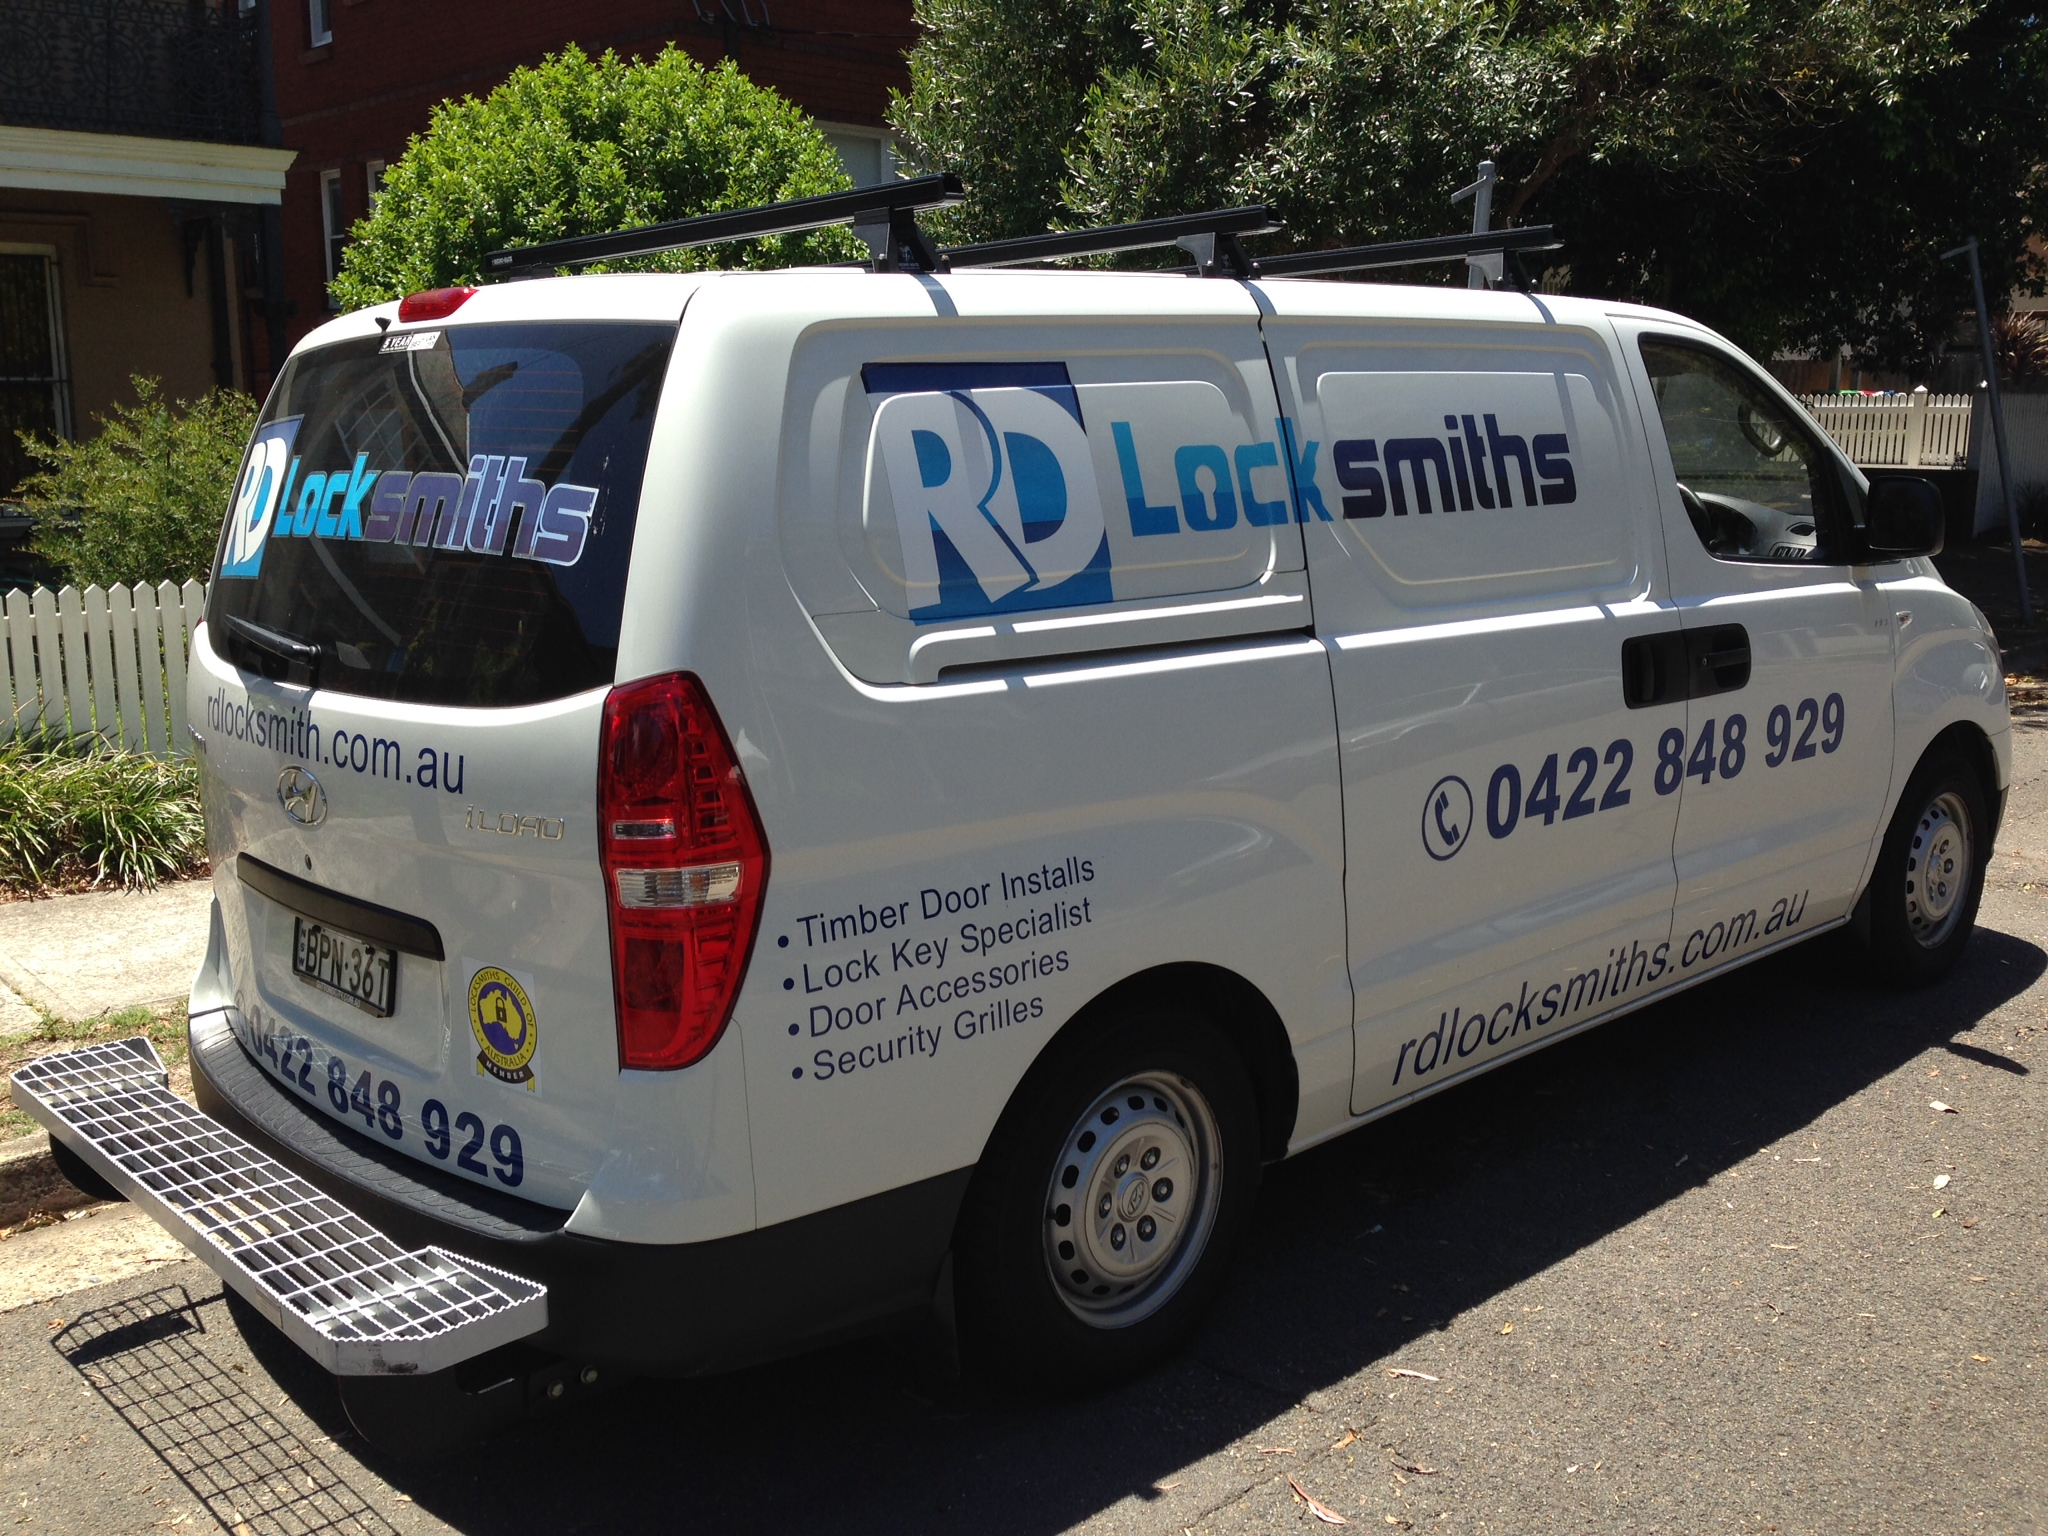 Qualified Experienced Locksmiths